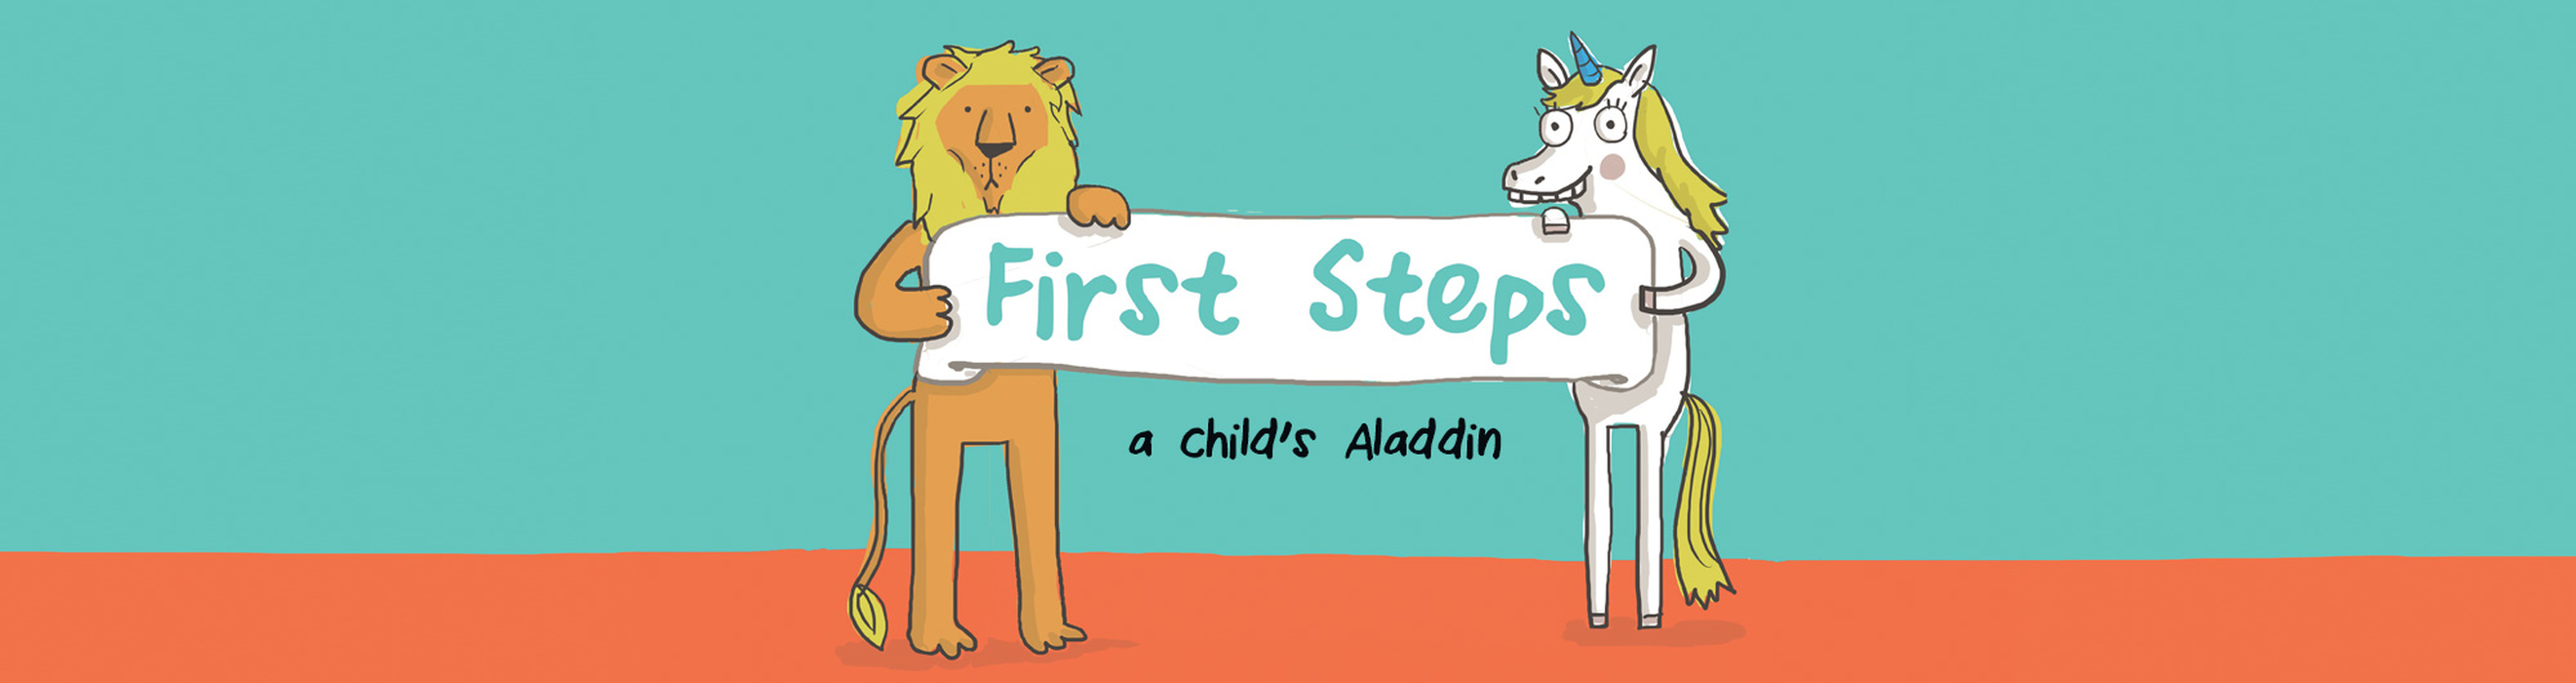 Hero-First-Steps-Aladdin